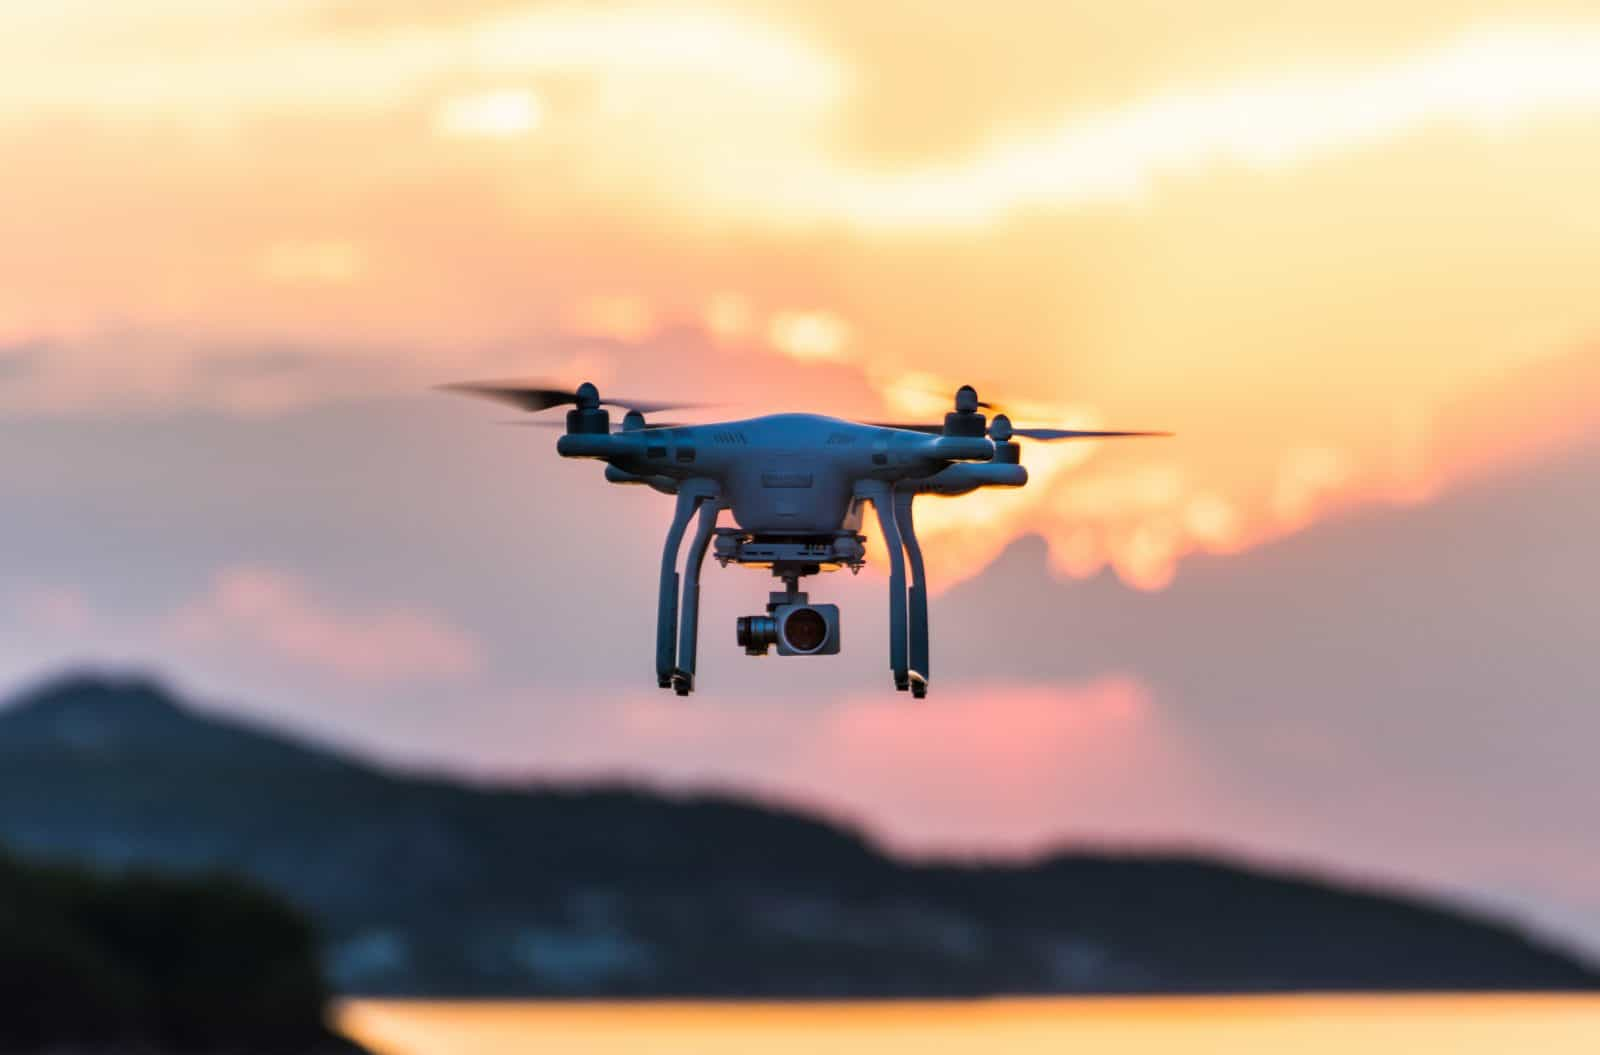 Definitive guide to drone use by public safety agencies